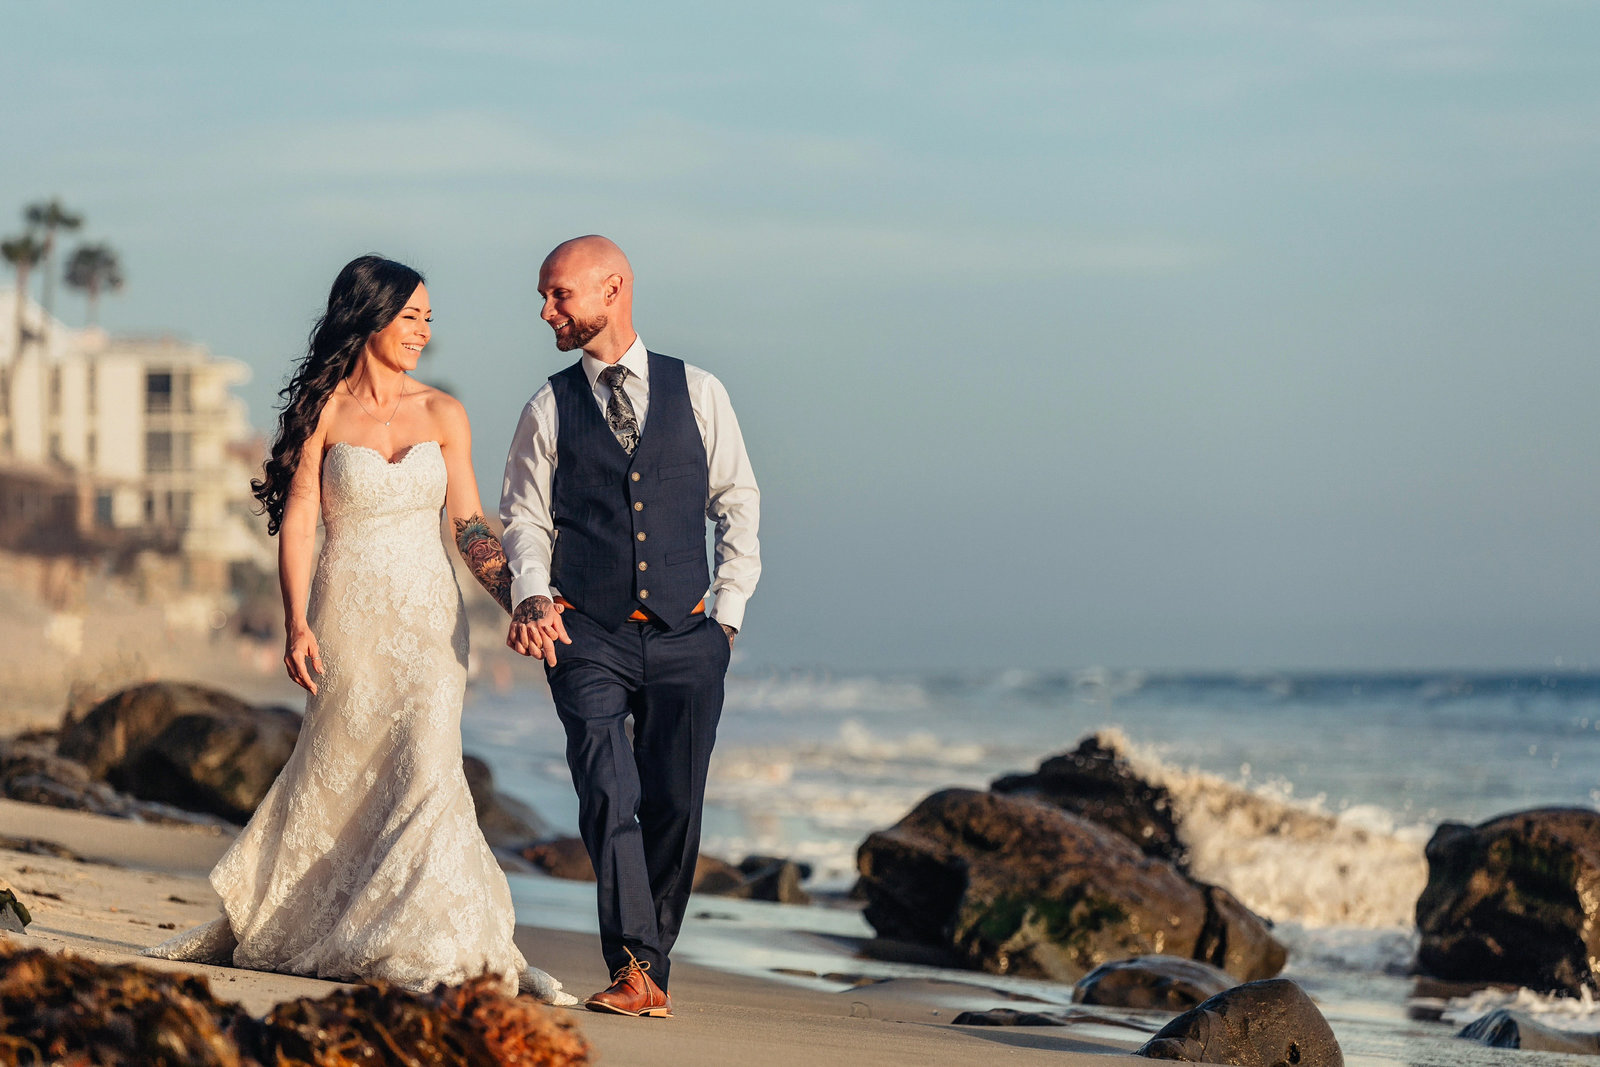 741hotel-laguna-beach-wedding4